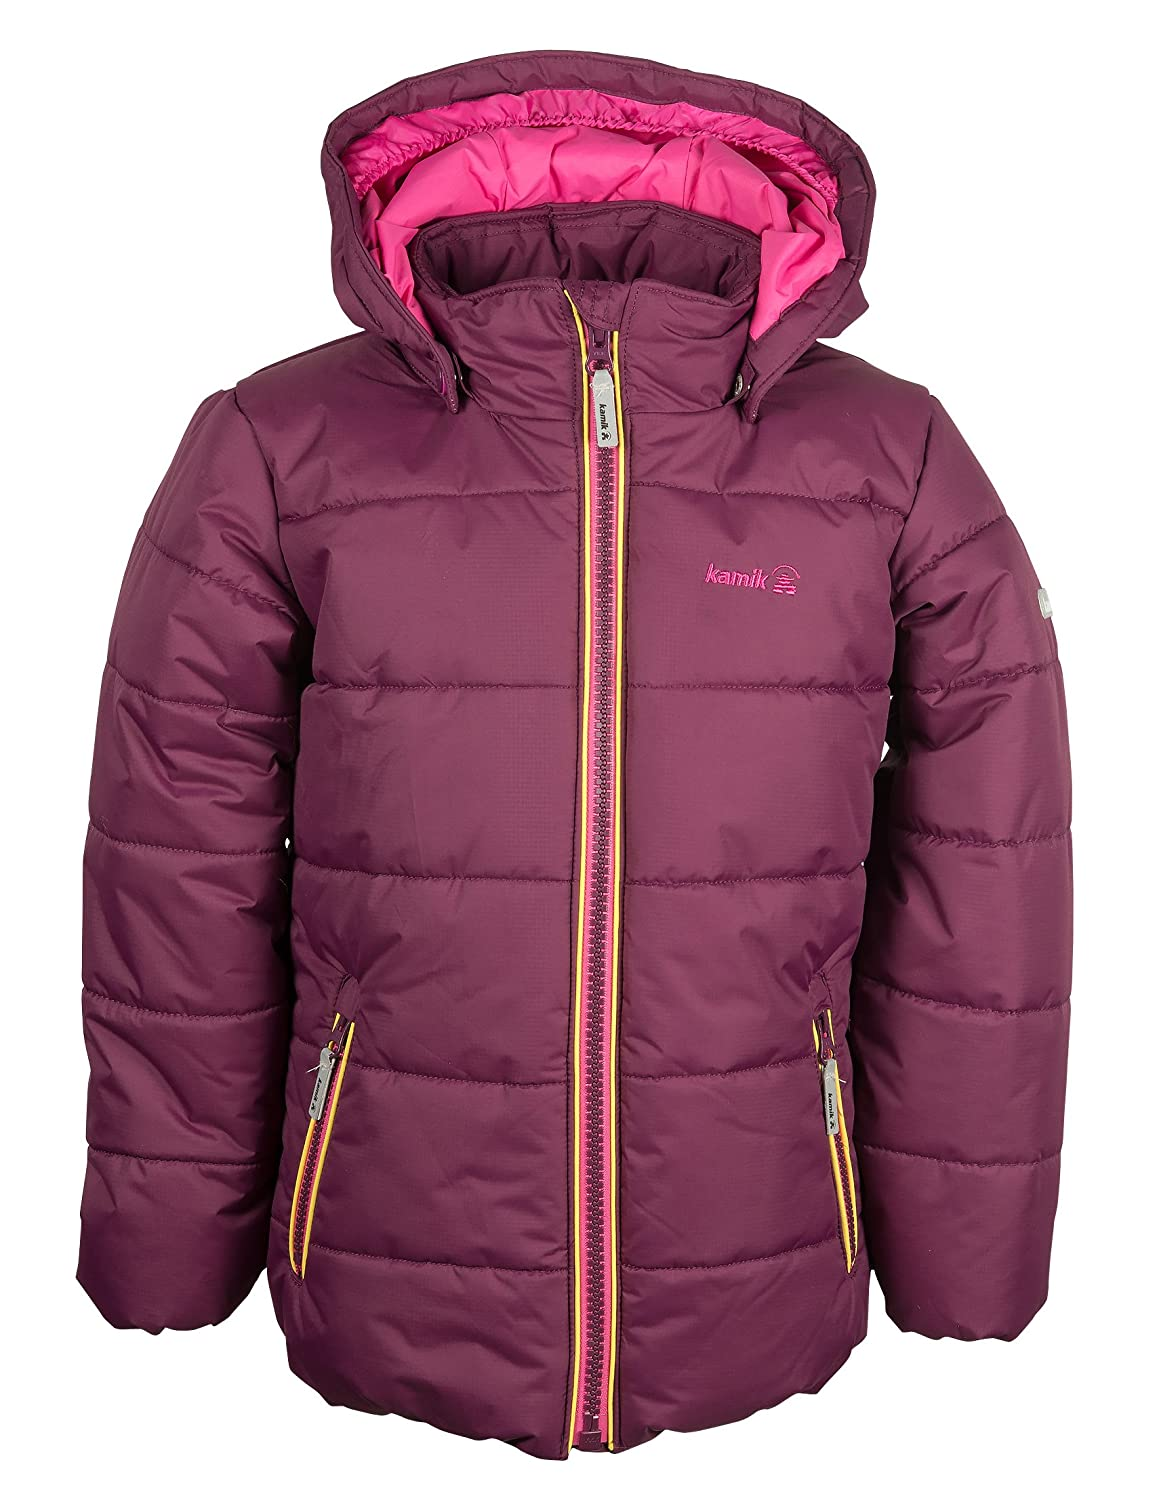 Kamik Girls 'Jacket Avery, Girls, AVERY Kamik Girls 'Jacket Avery